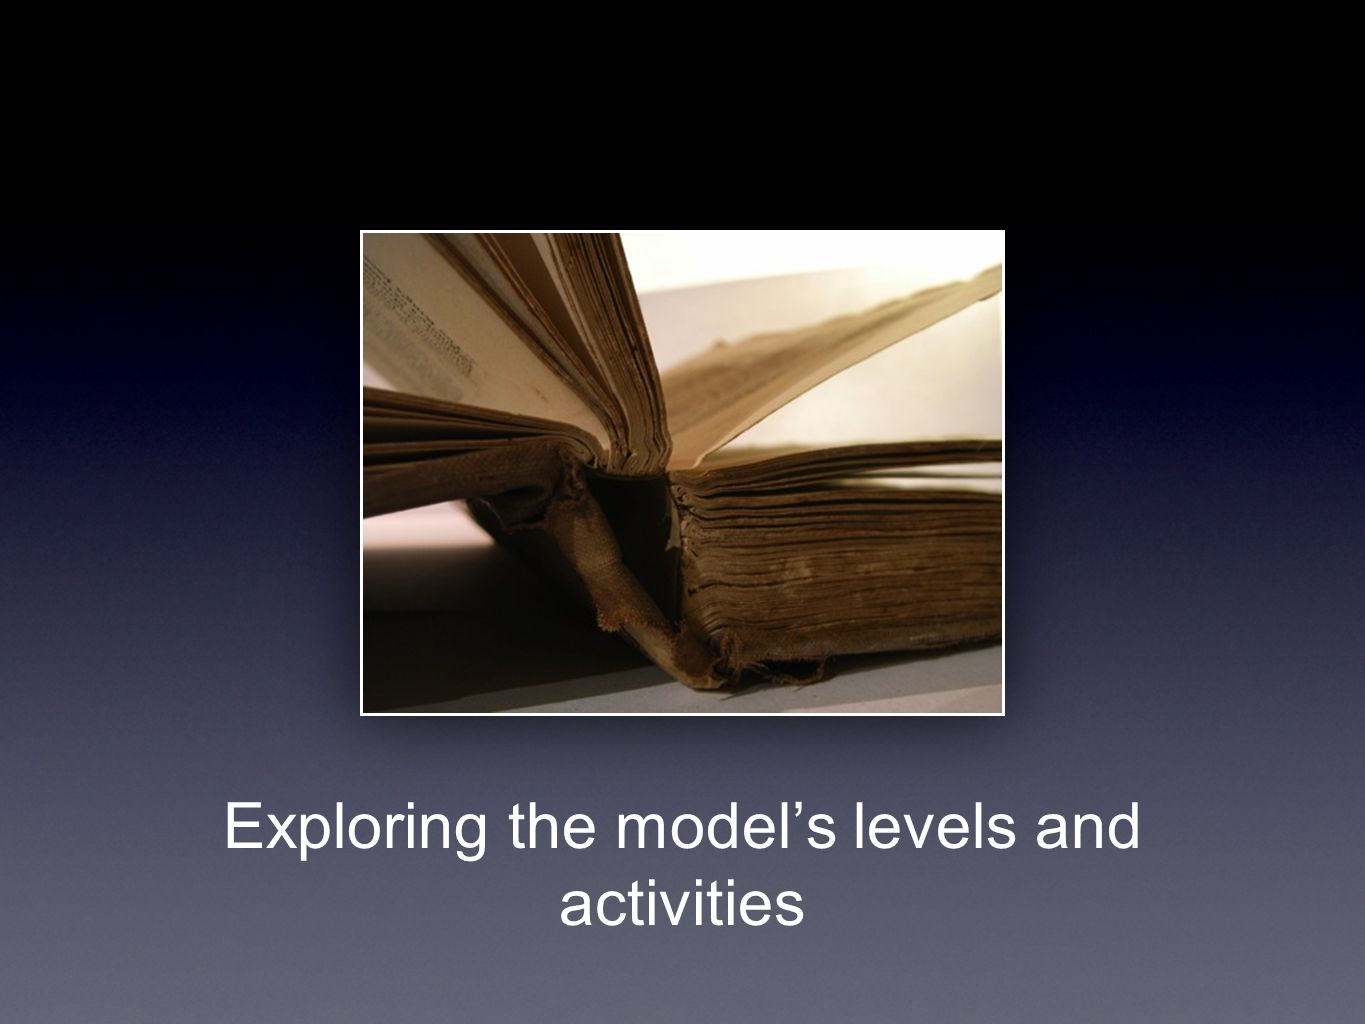 Exploring the model's levels and activities